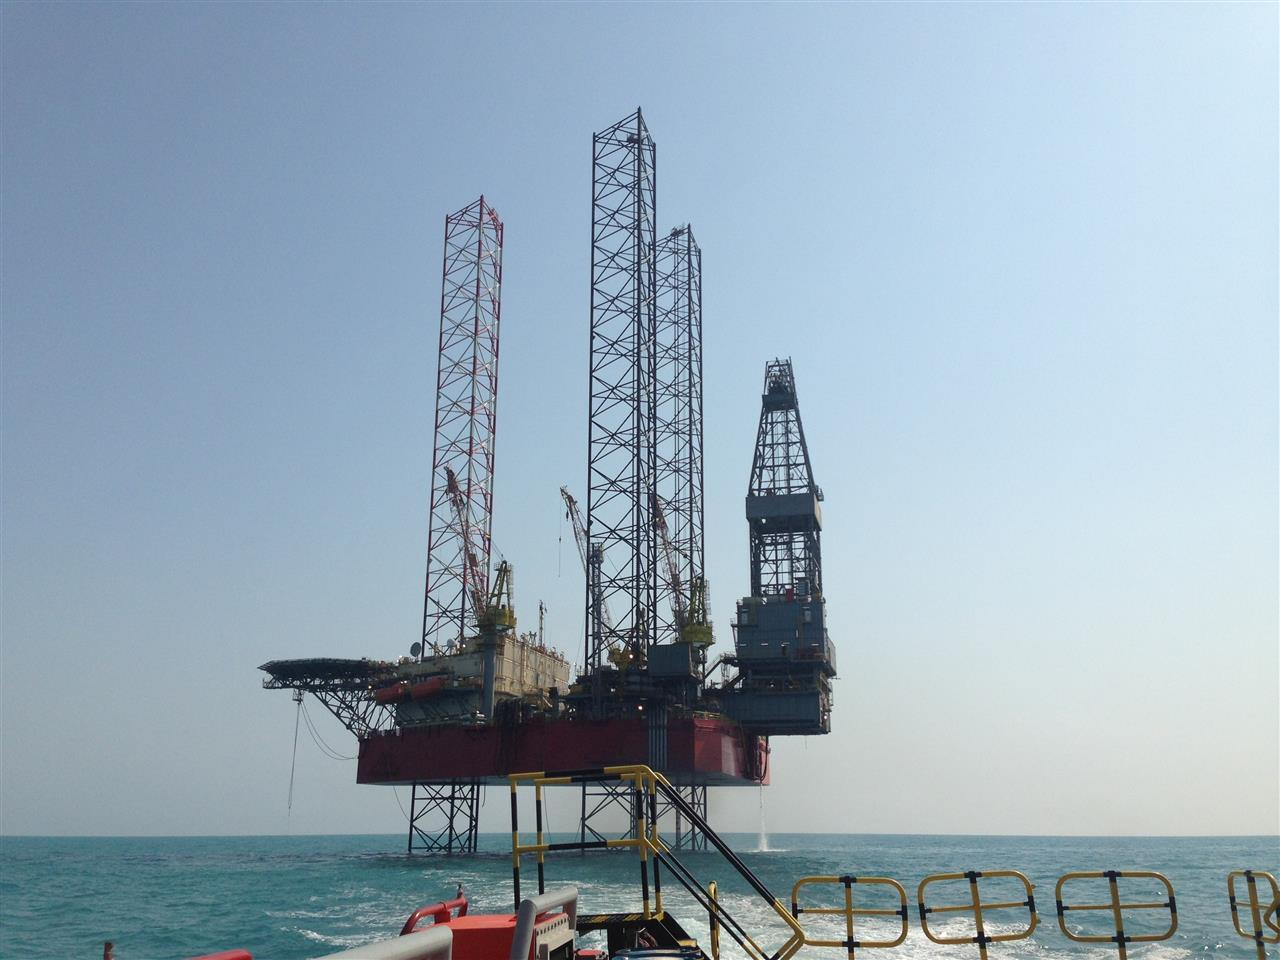 Seadrill Ltd (SDRL) Releases Earnings Results, Misses Expectations By $-0.26 EPS